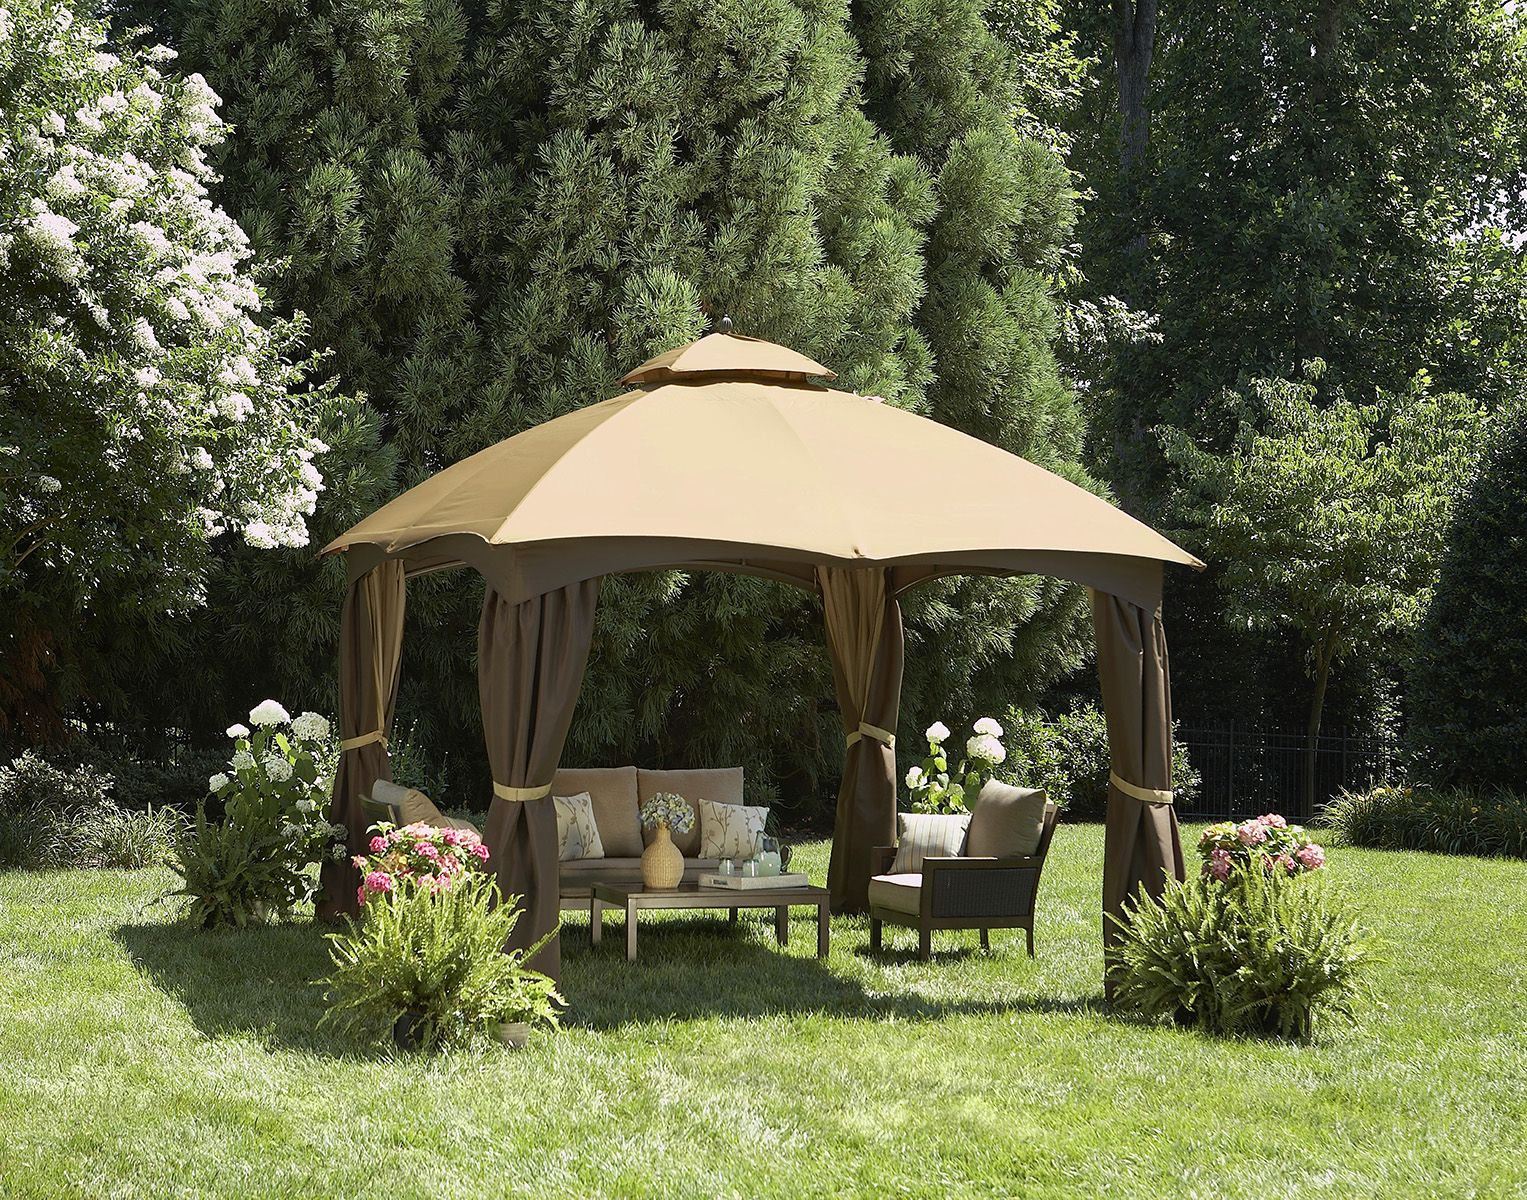 Shade From The Sun Or Protection From The Rain, This